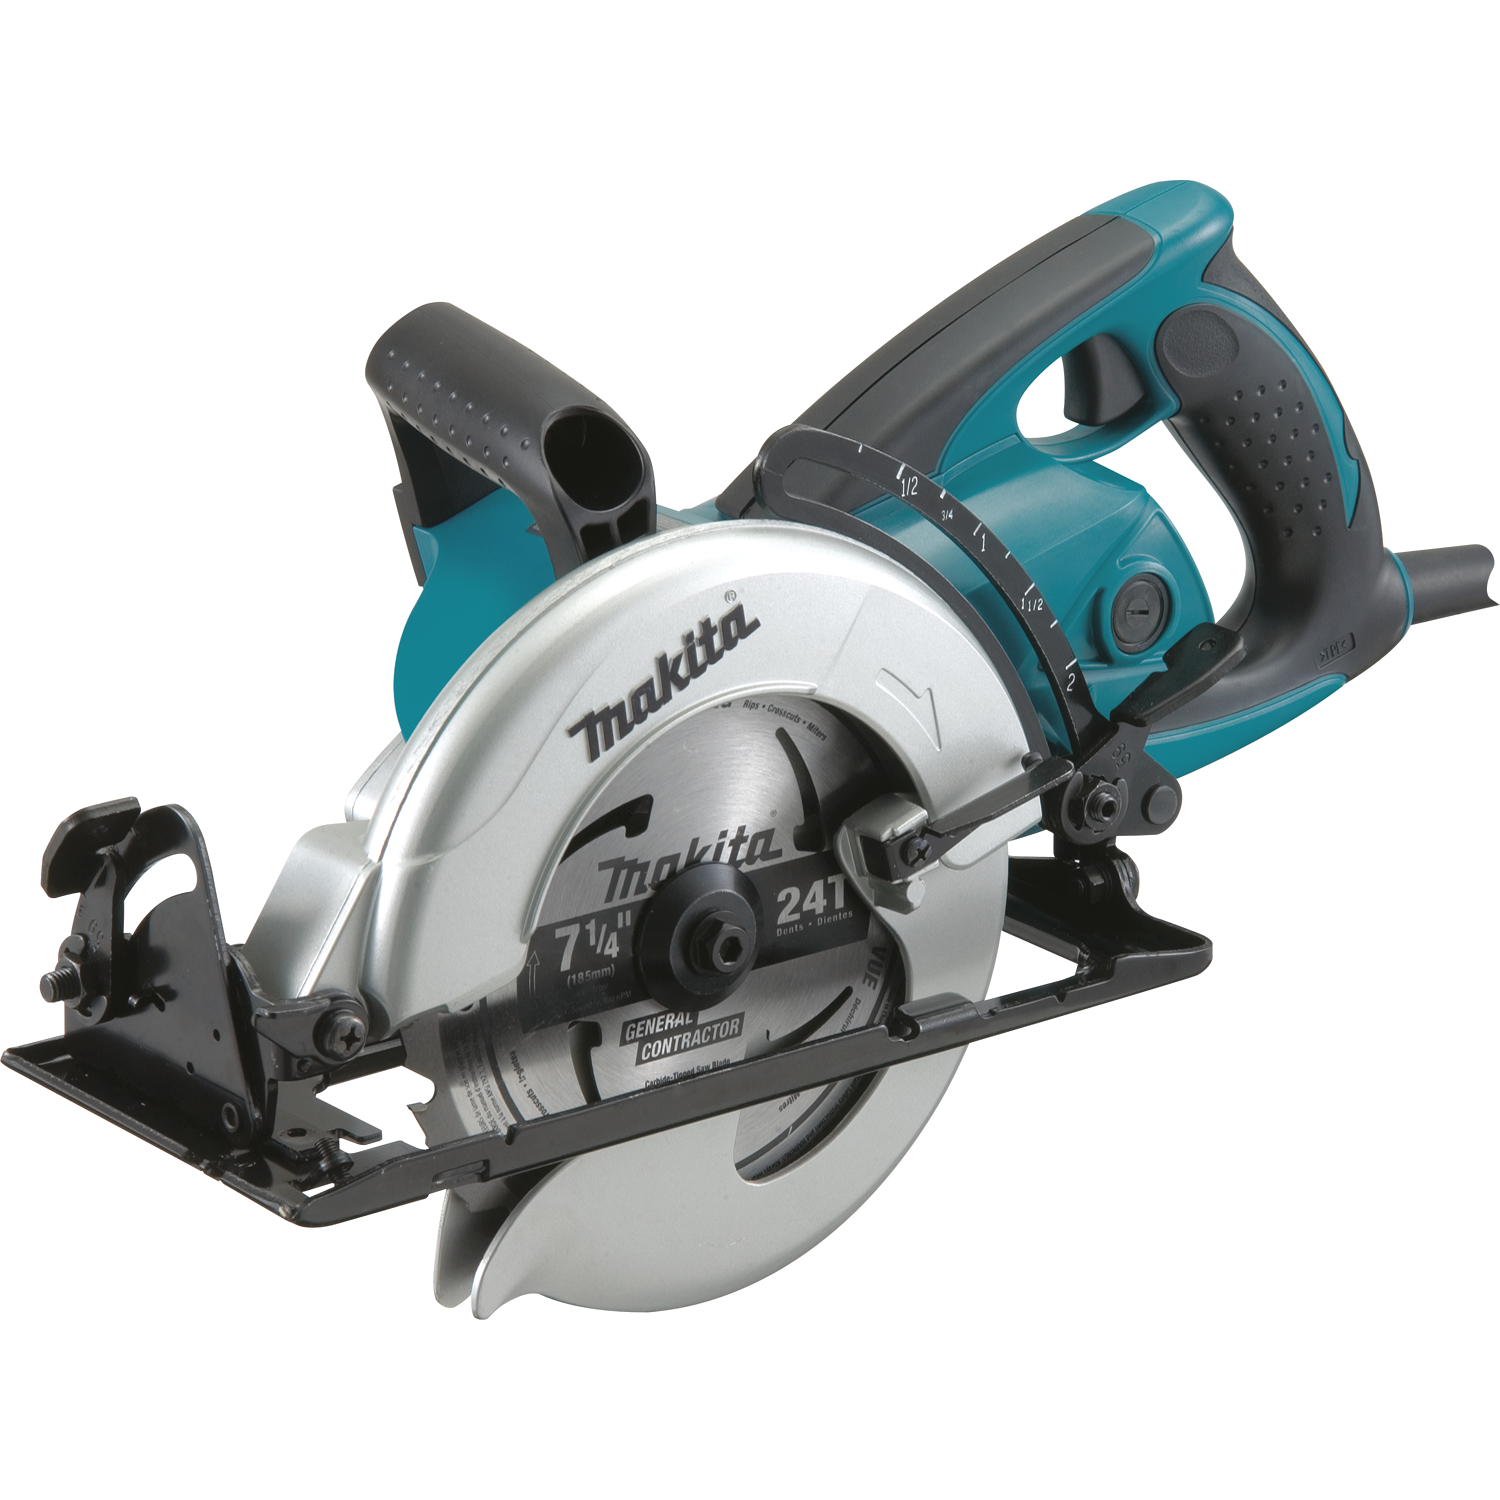 Makita usa product details 5477nb 5477nb greentooth Gallery